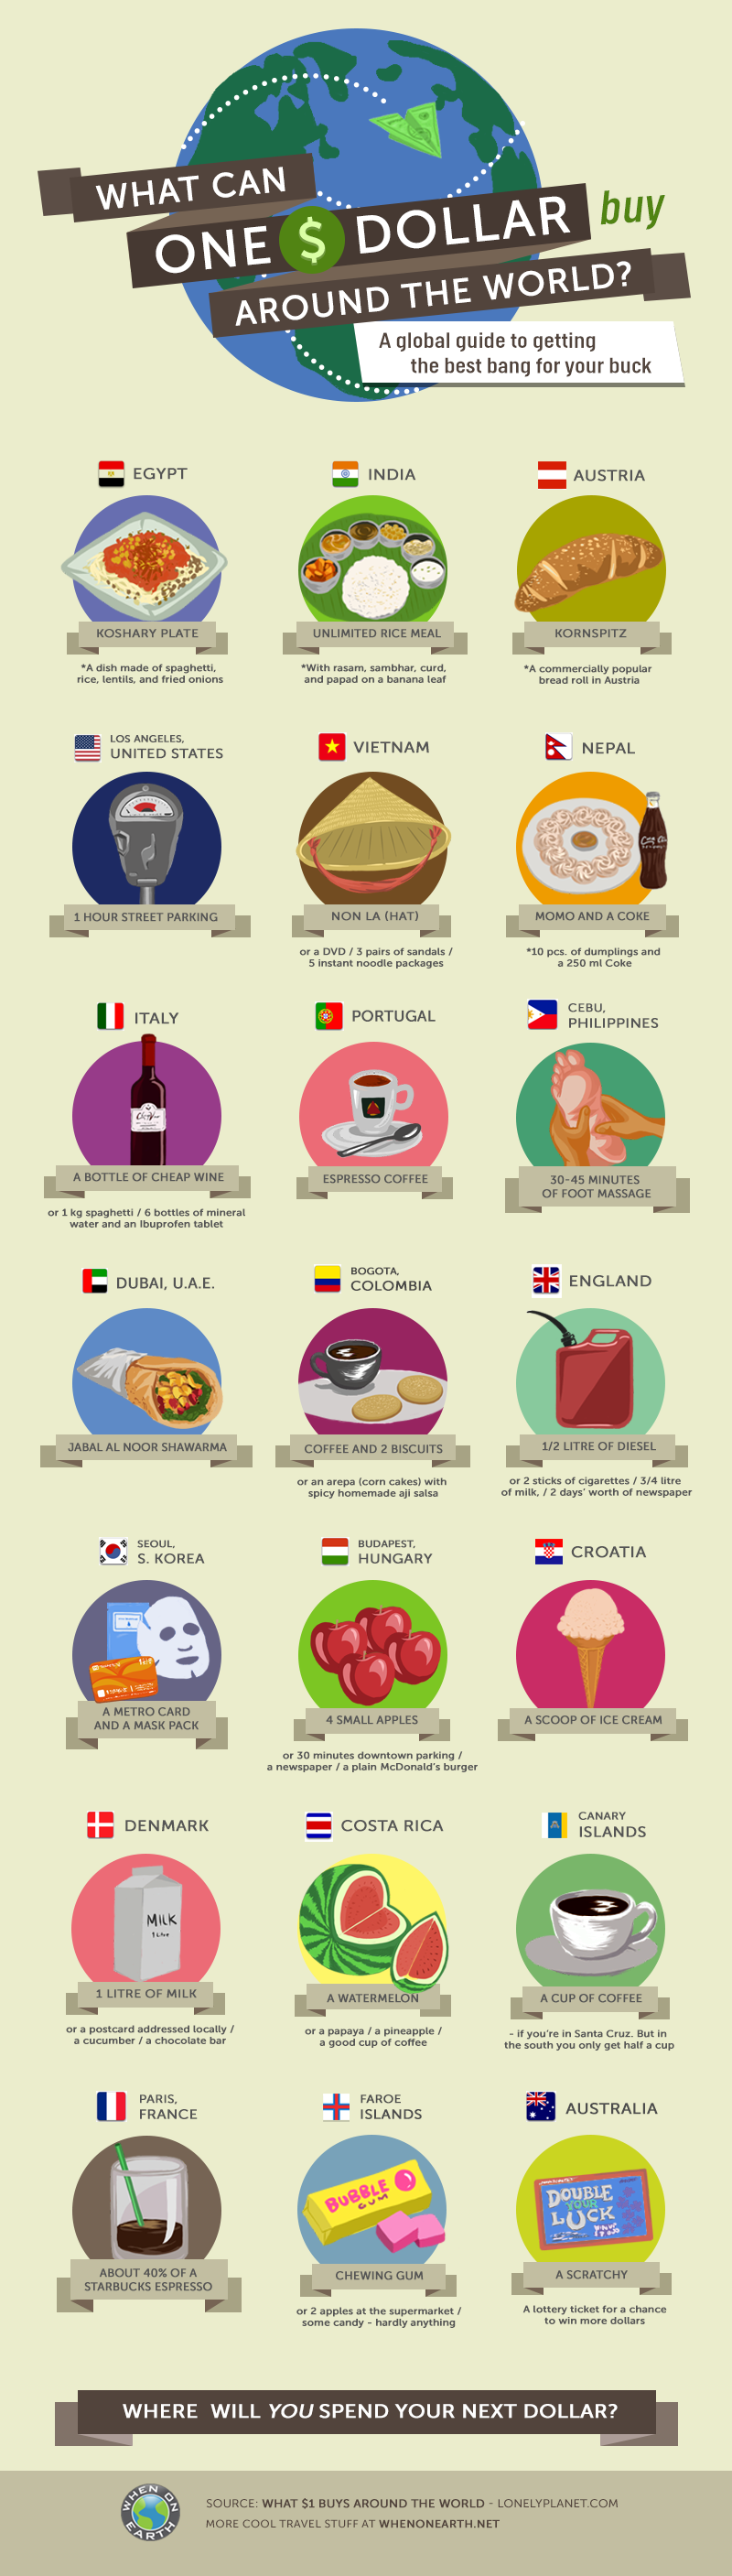 What-can-one-dollar-buy-around-the-world-200814